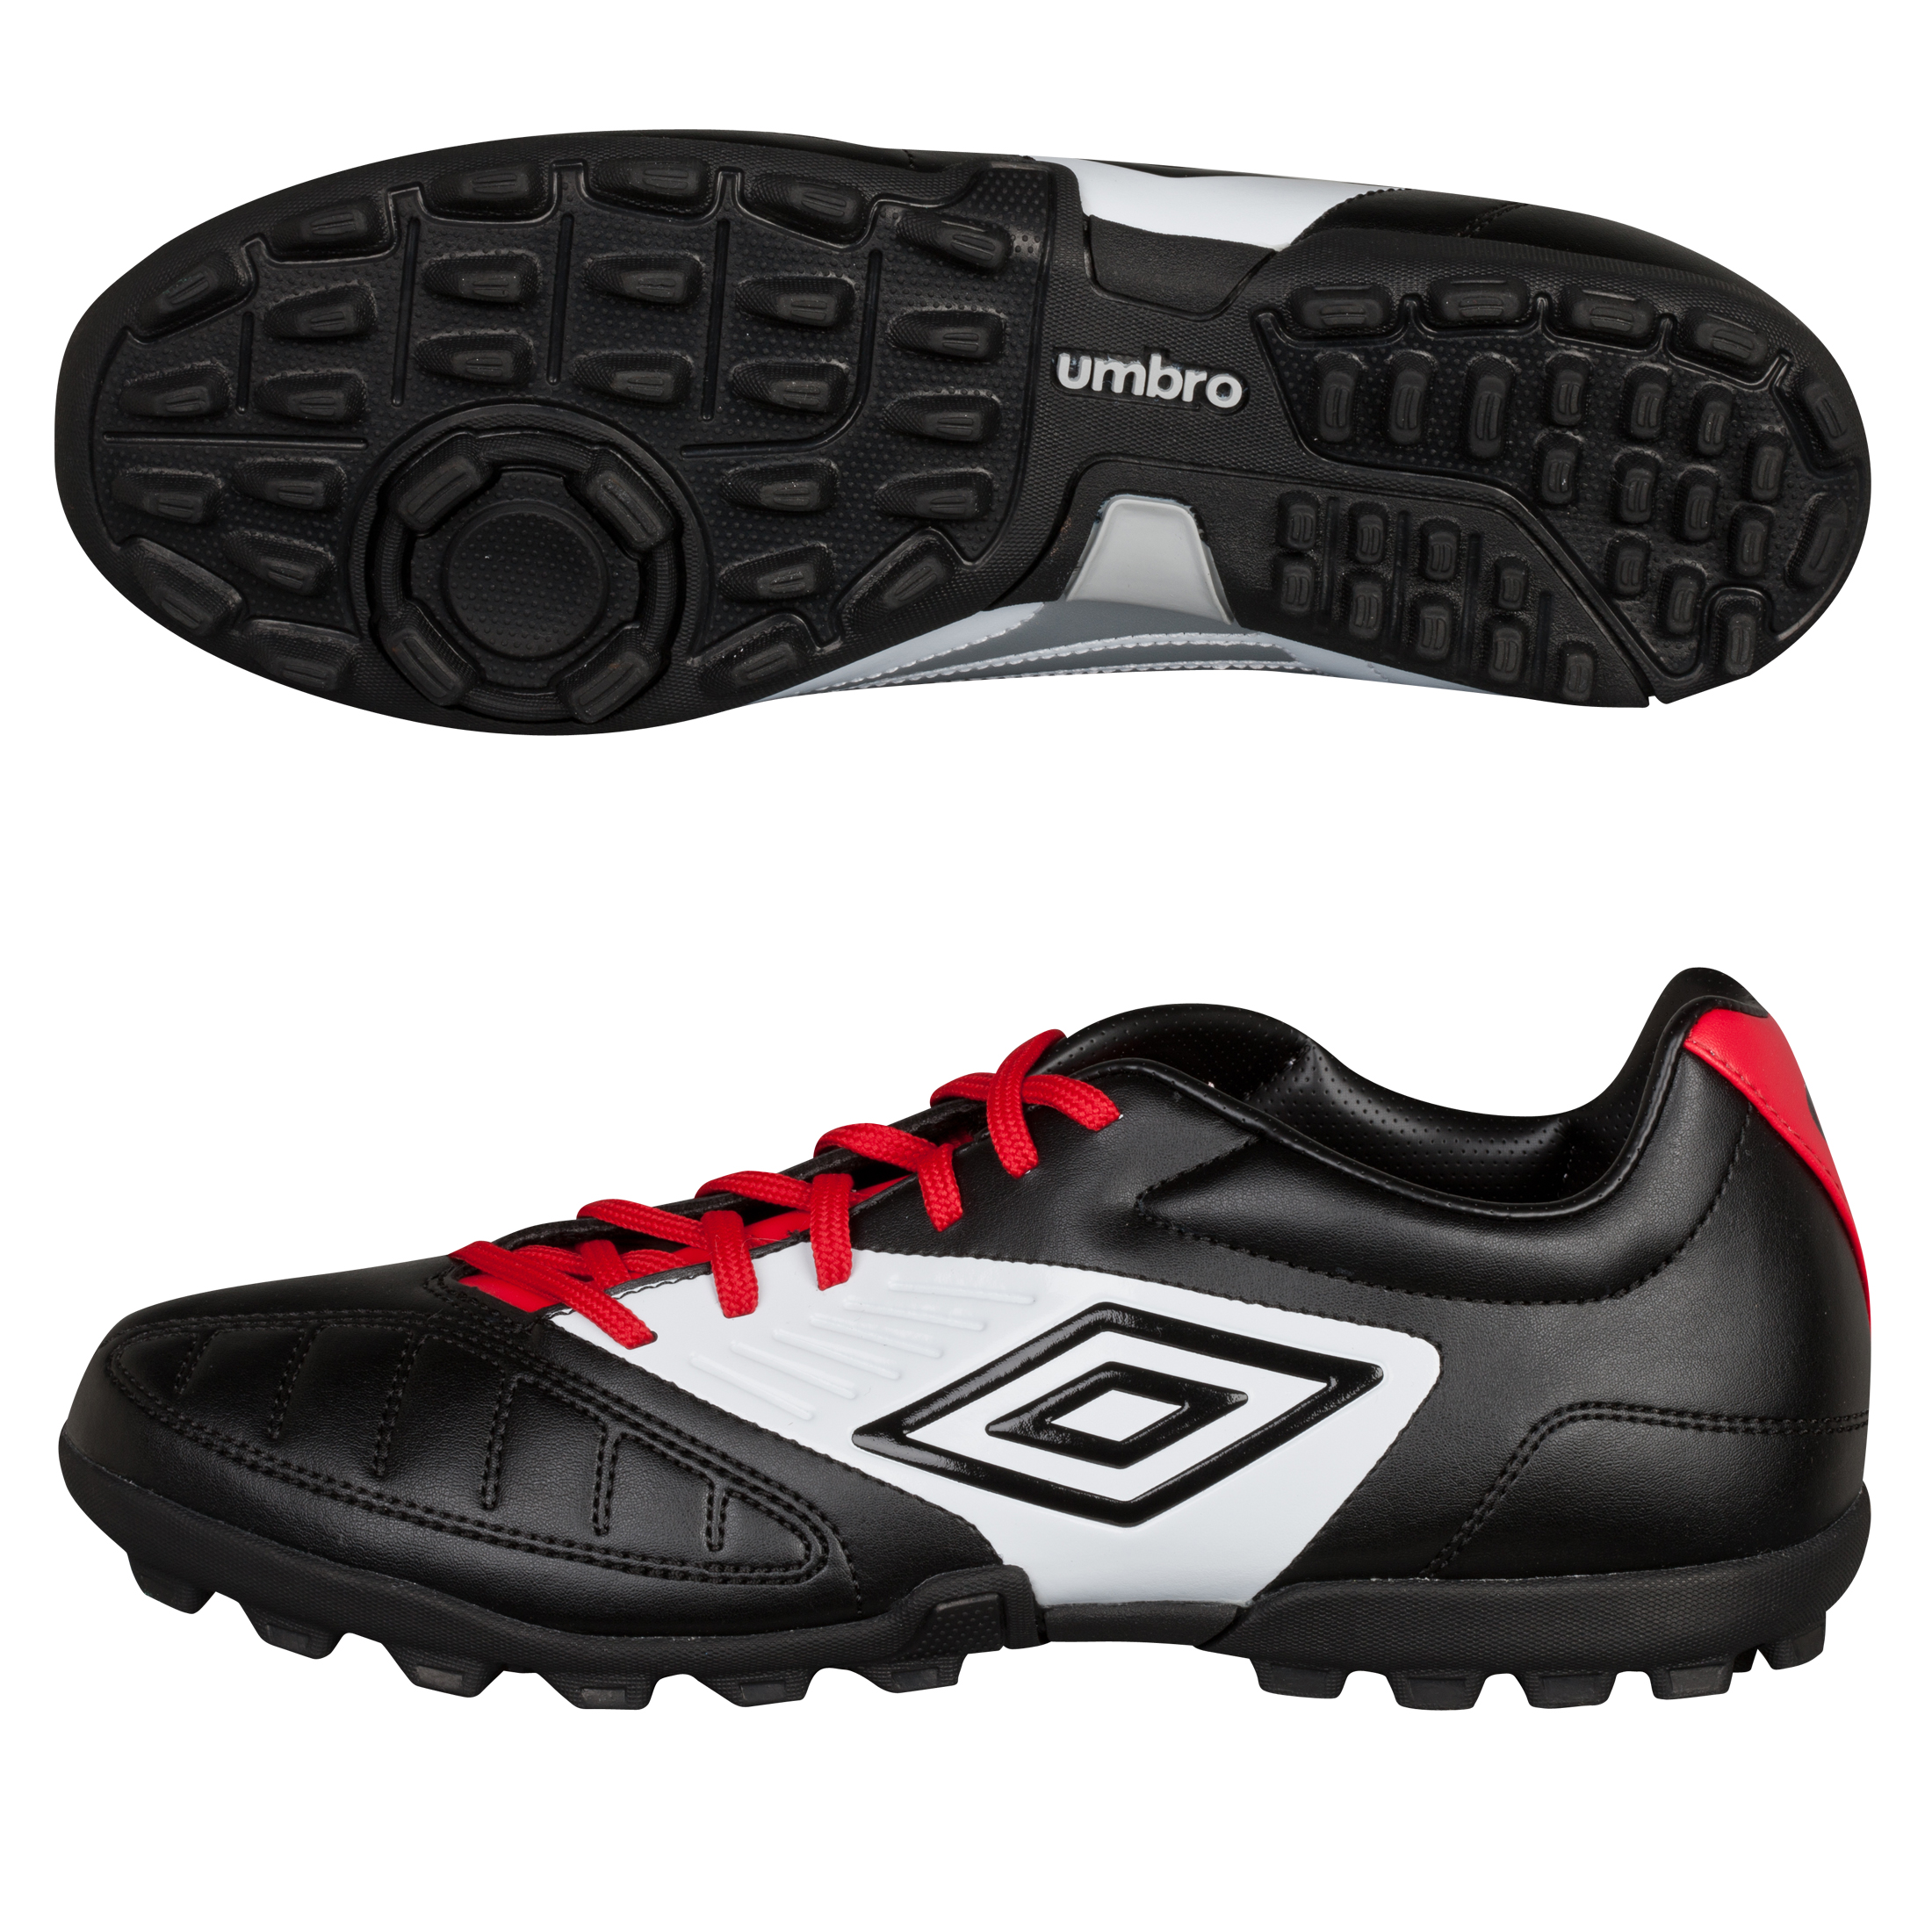 Umbro Geometra Cup Astroturf Trainers - Black/White/True Red